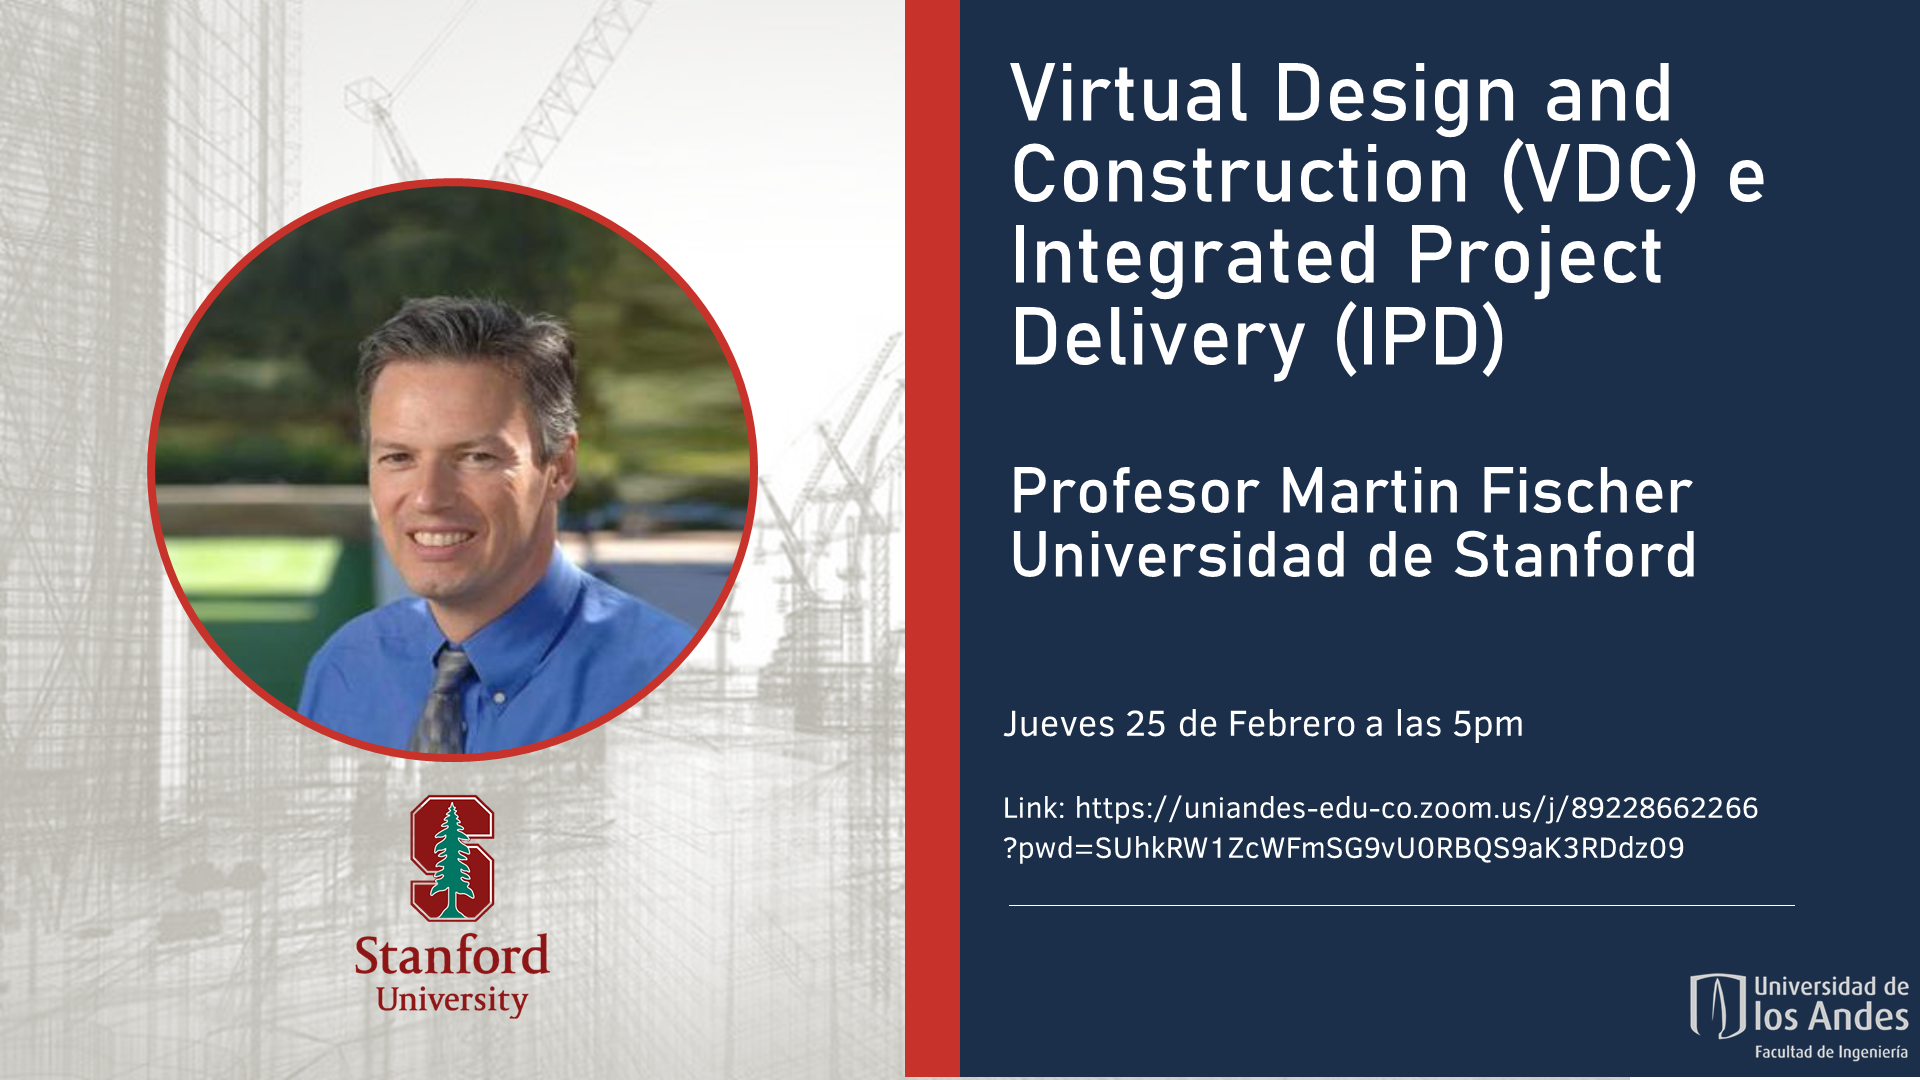 Virtual Design and Construction (VDC) e Integrated Project Delivery (IPD)